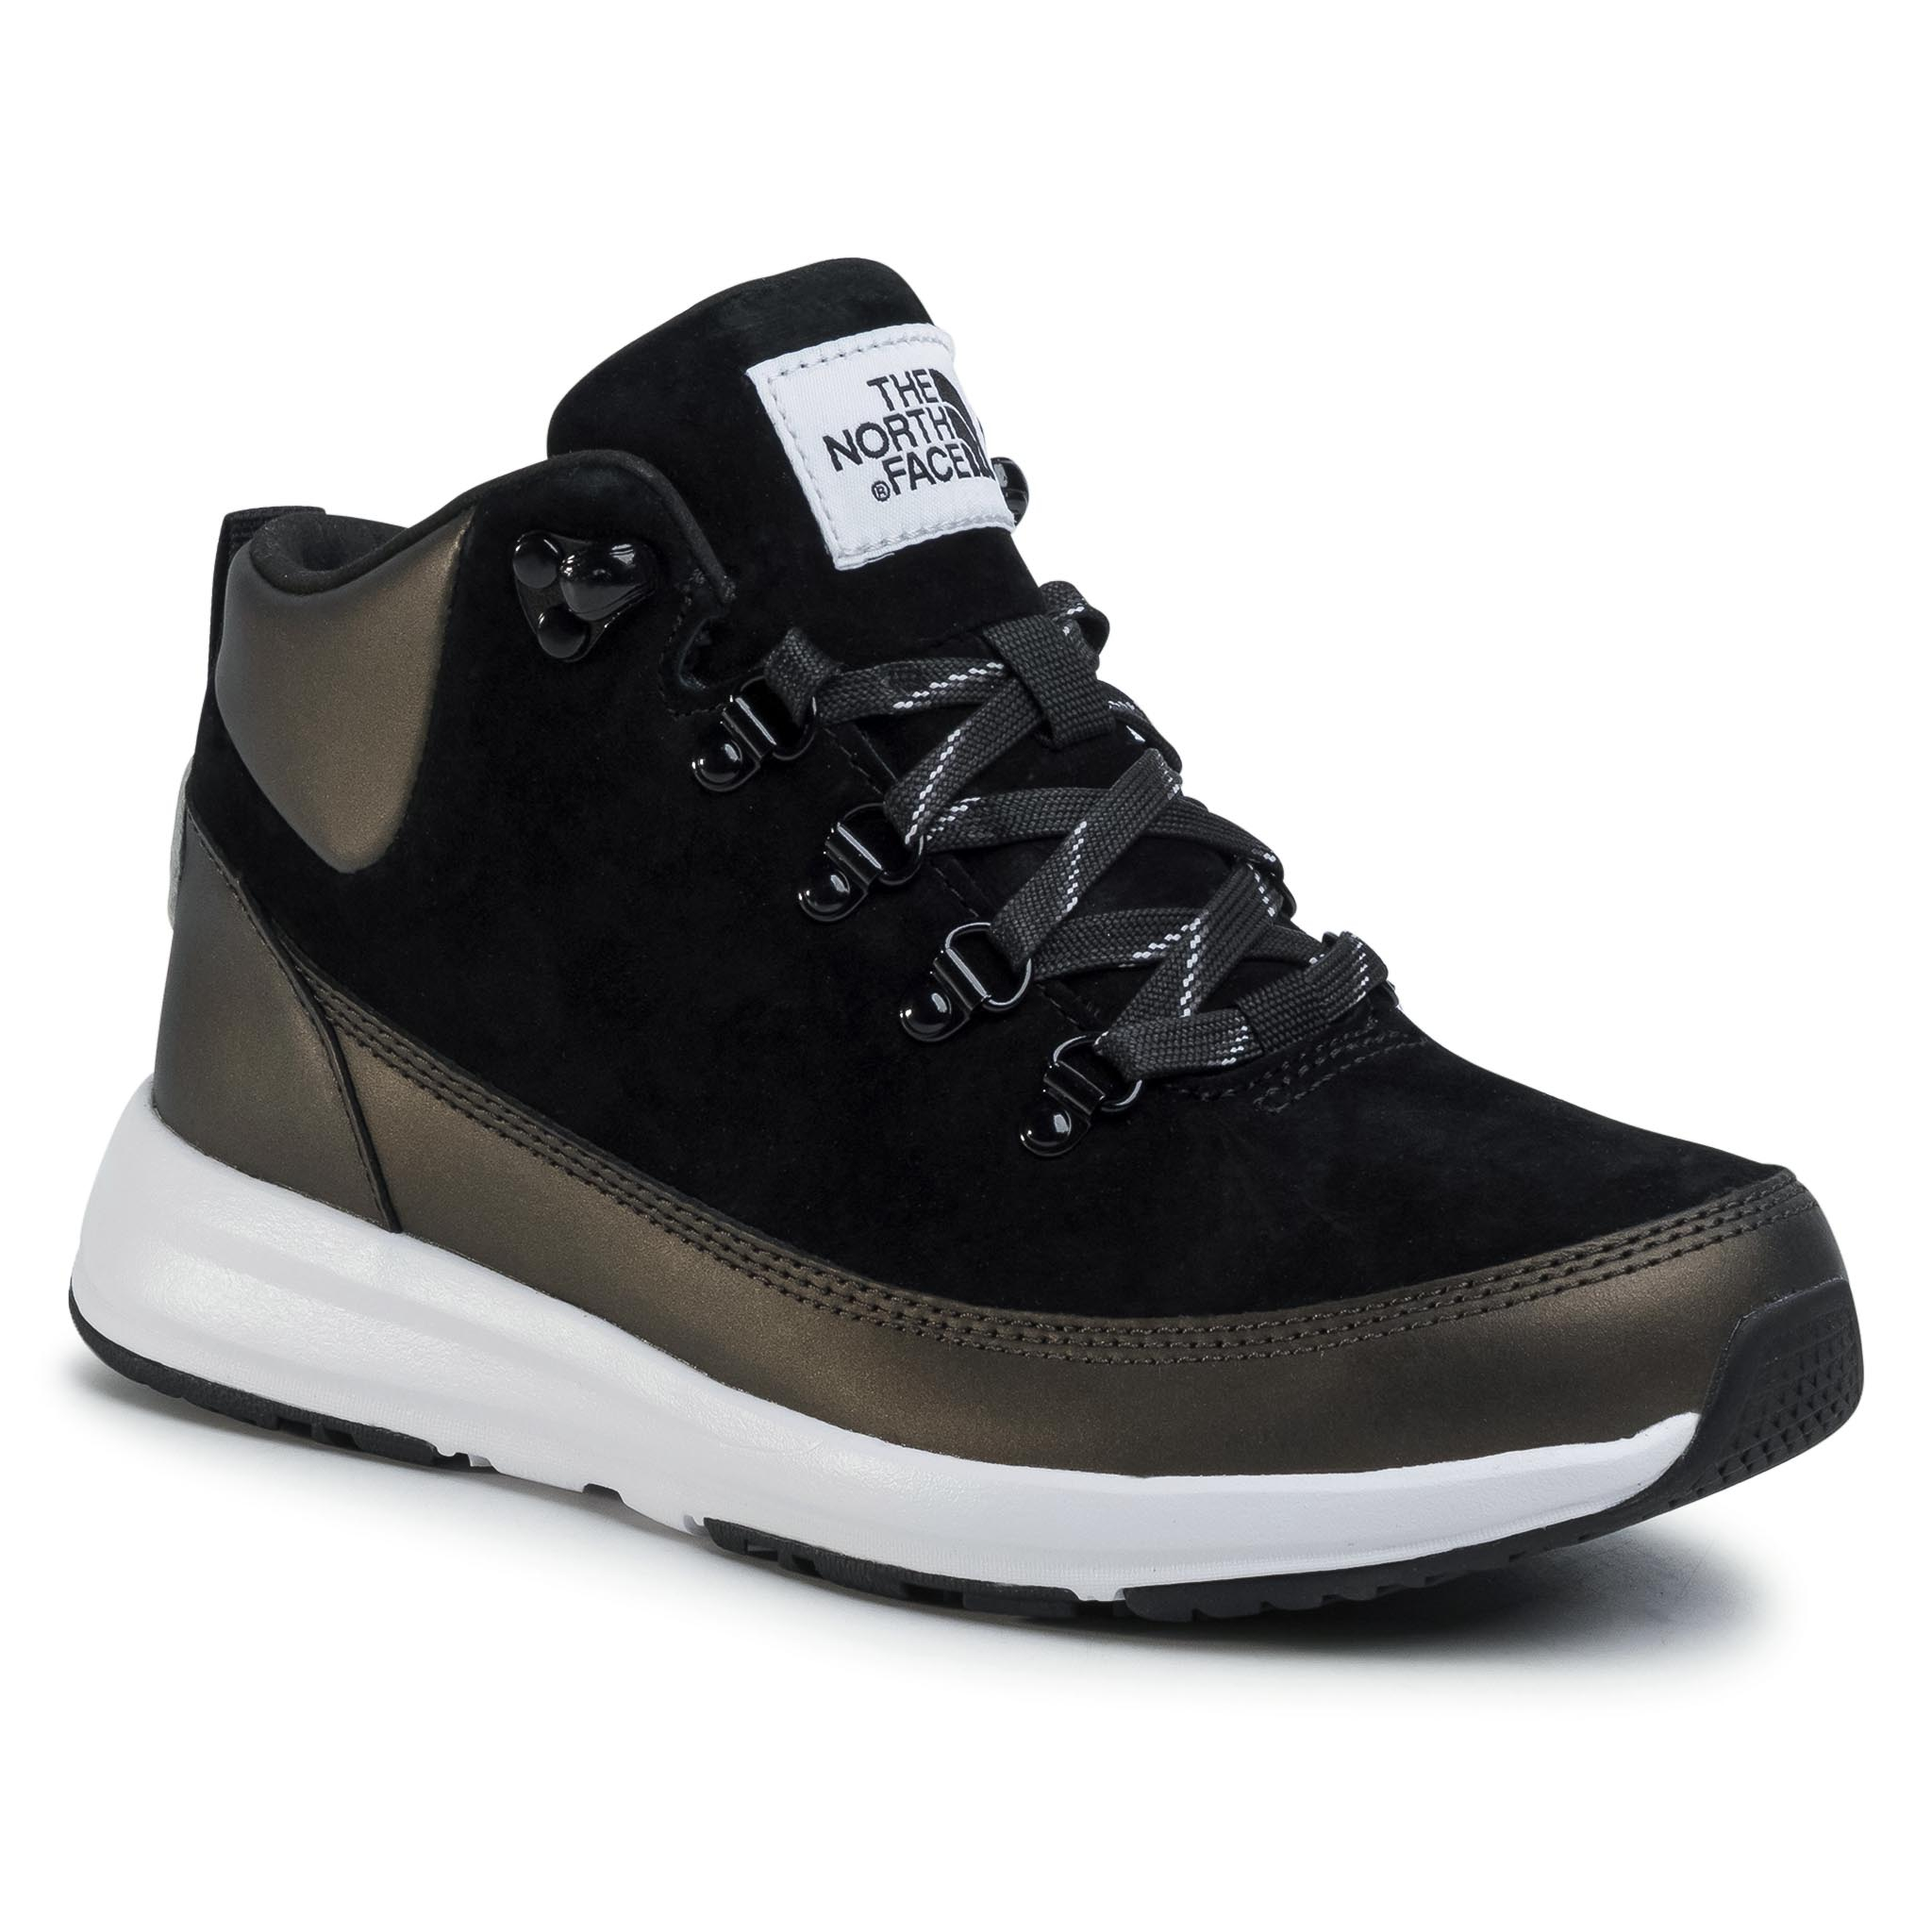 Trekkings The North Face - Back-To Berkeley Redux Remtlz Lux Nf0a46avky4 Tnf Black/Tnf White imagine epantofi.ro 2021